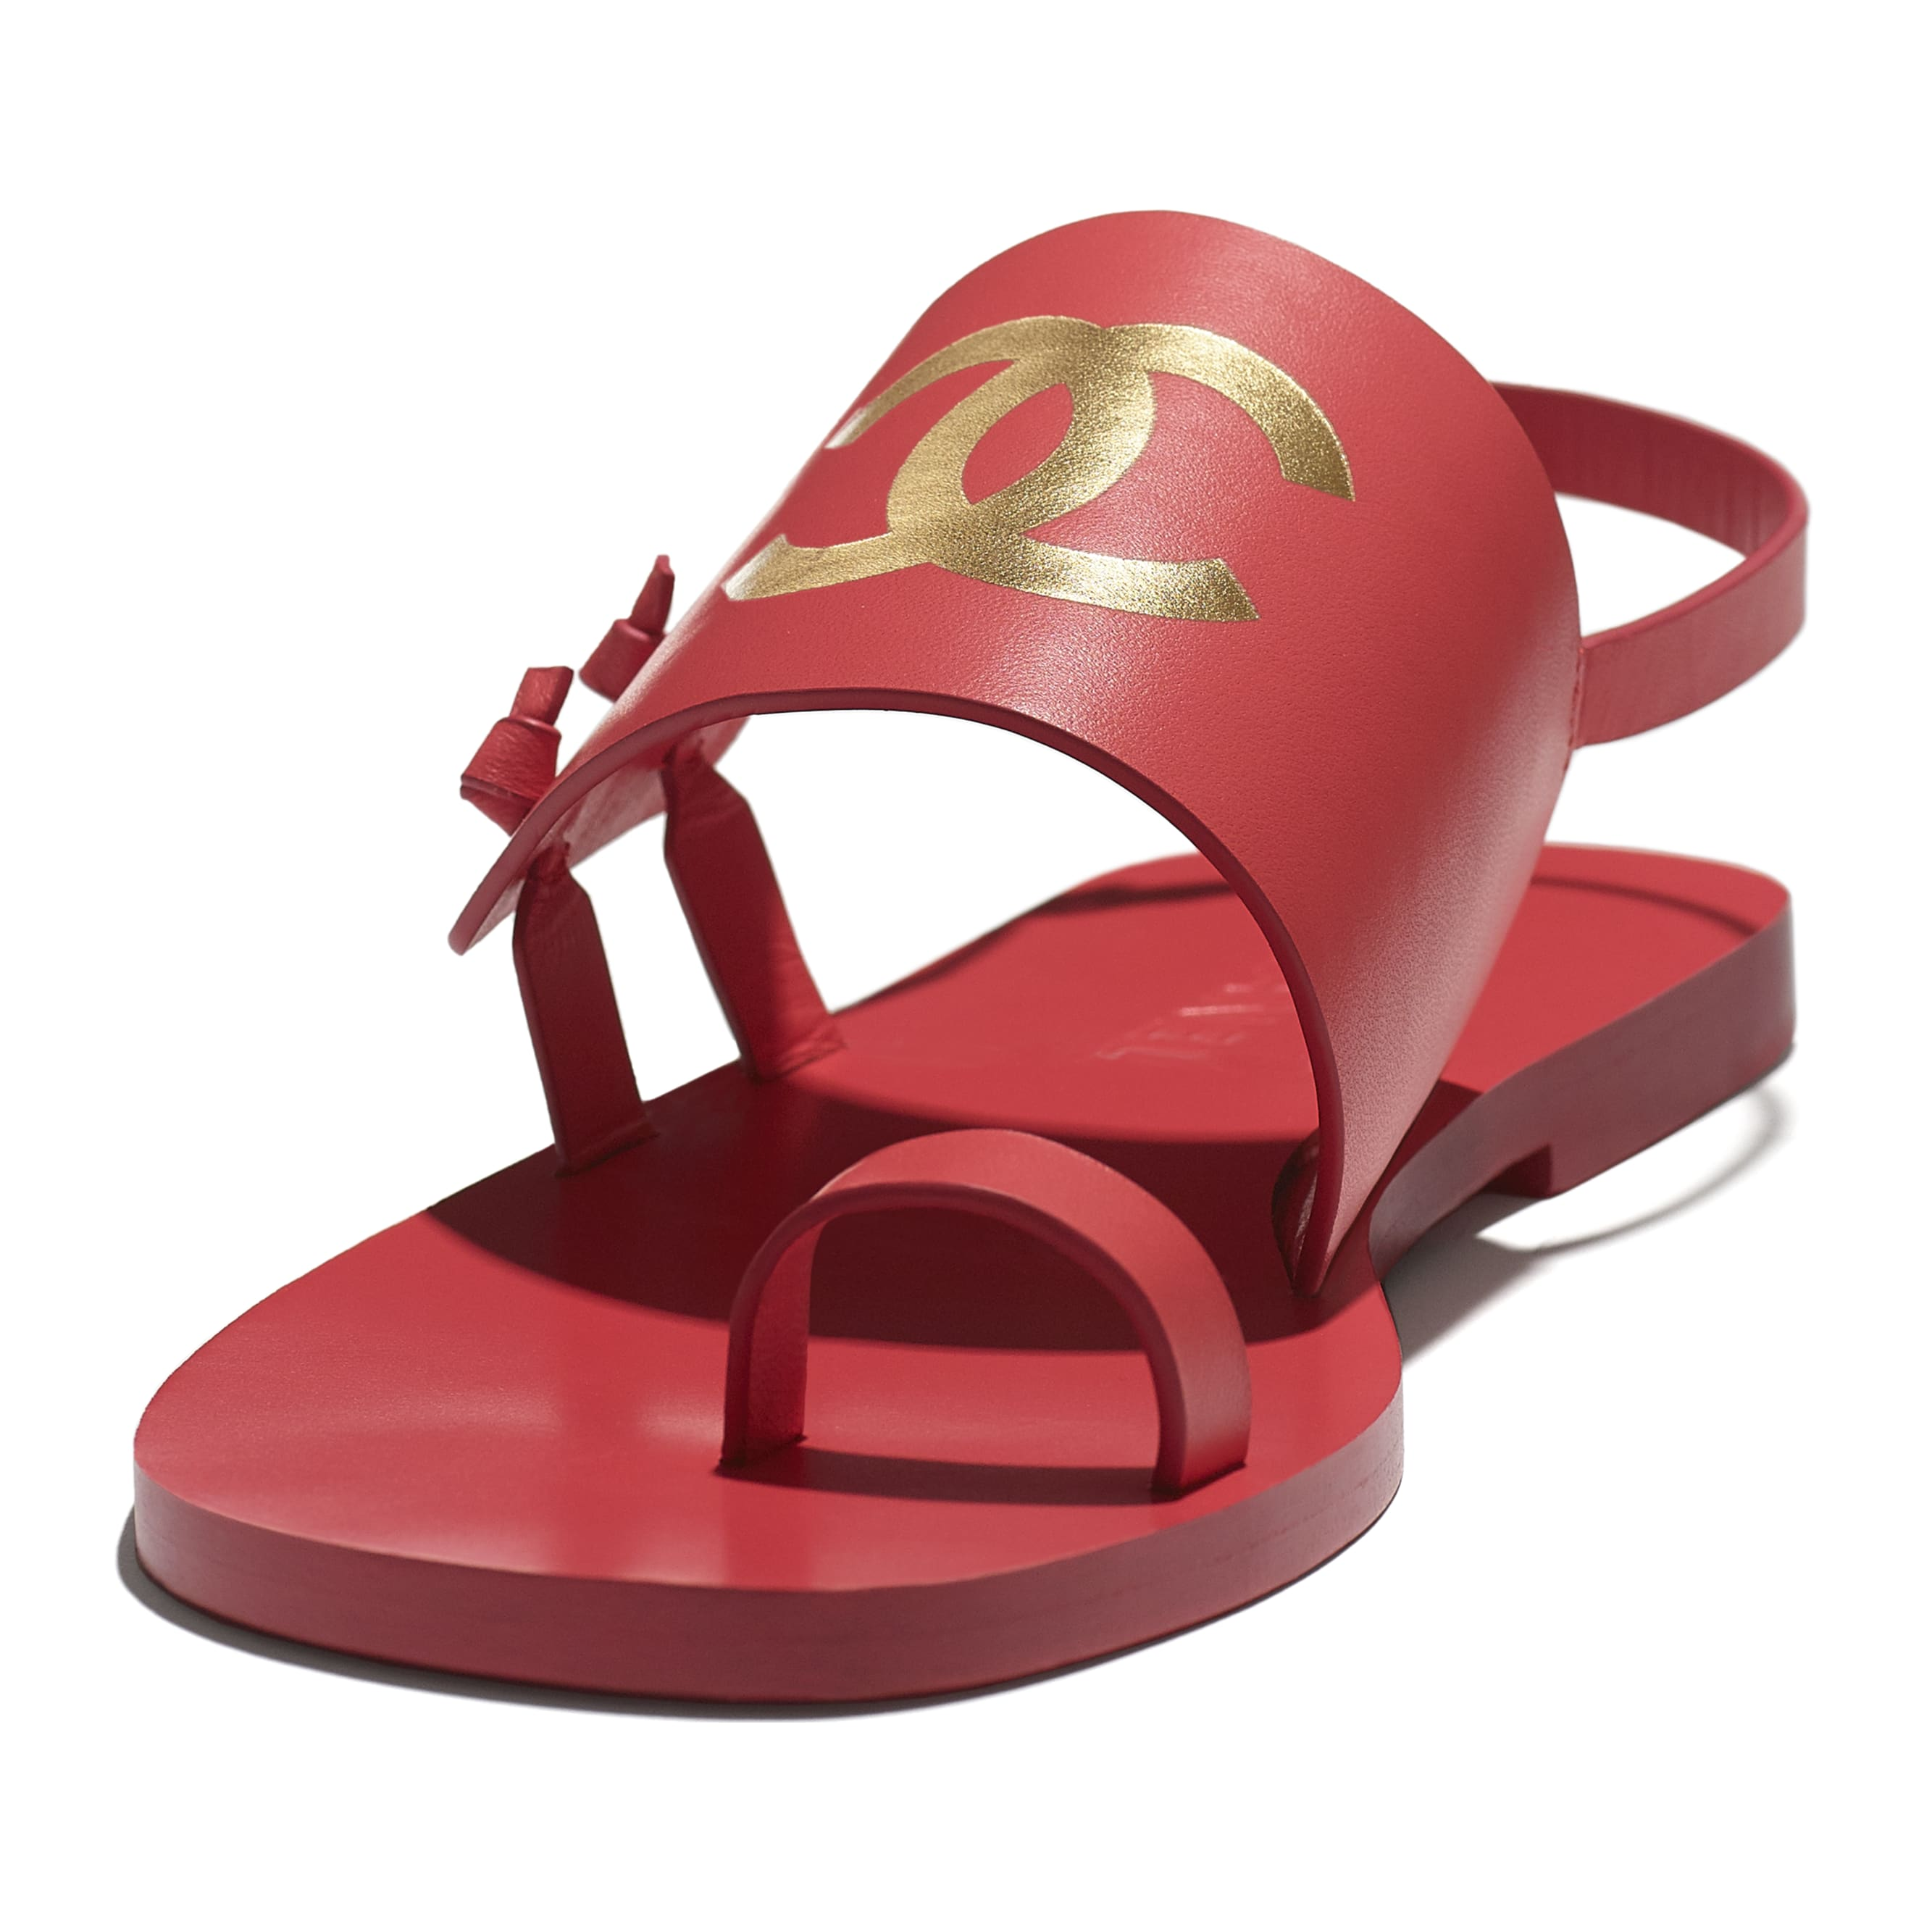 Sandals - Red - Goatskin - CHANEL - Extra view - see standard sized version